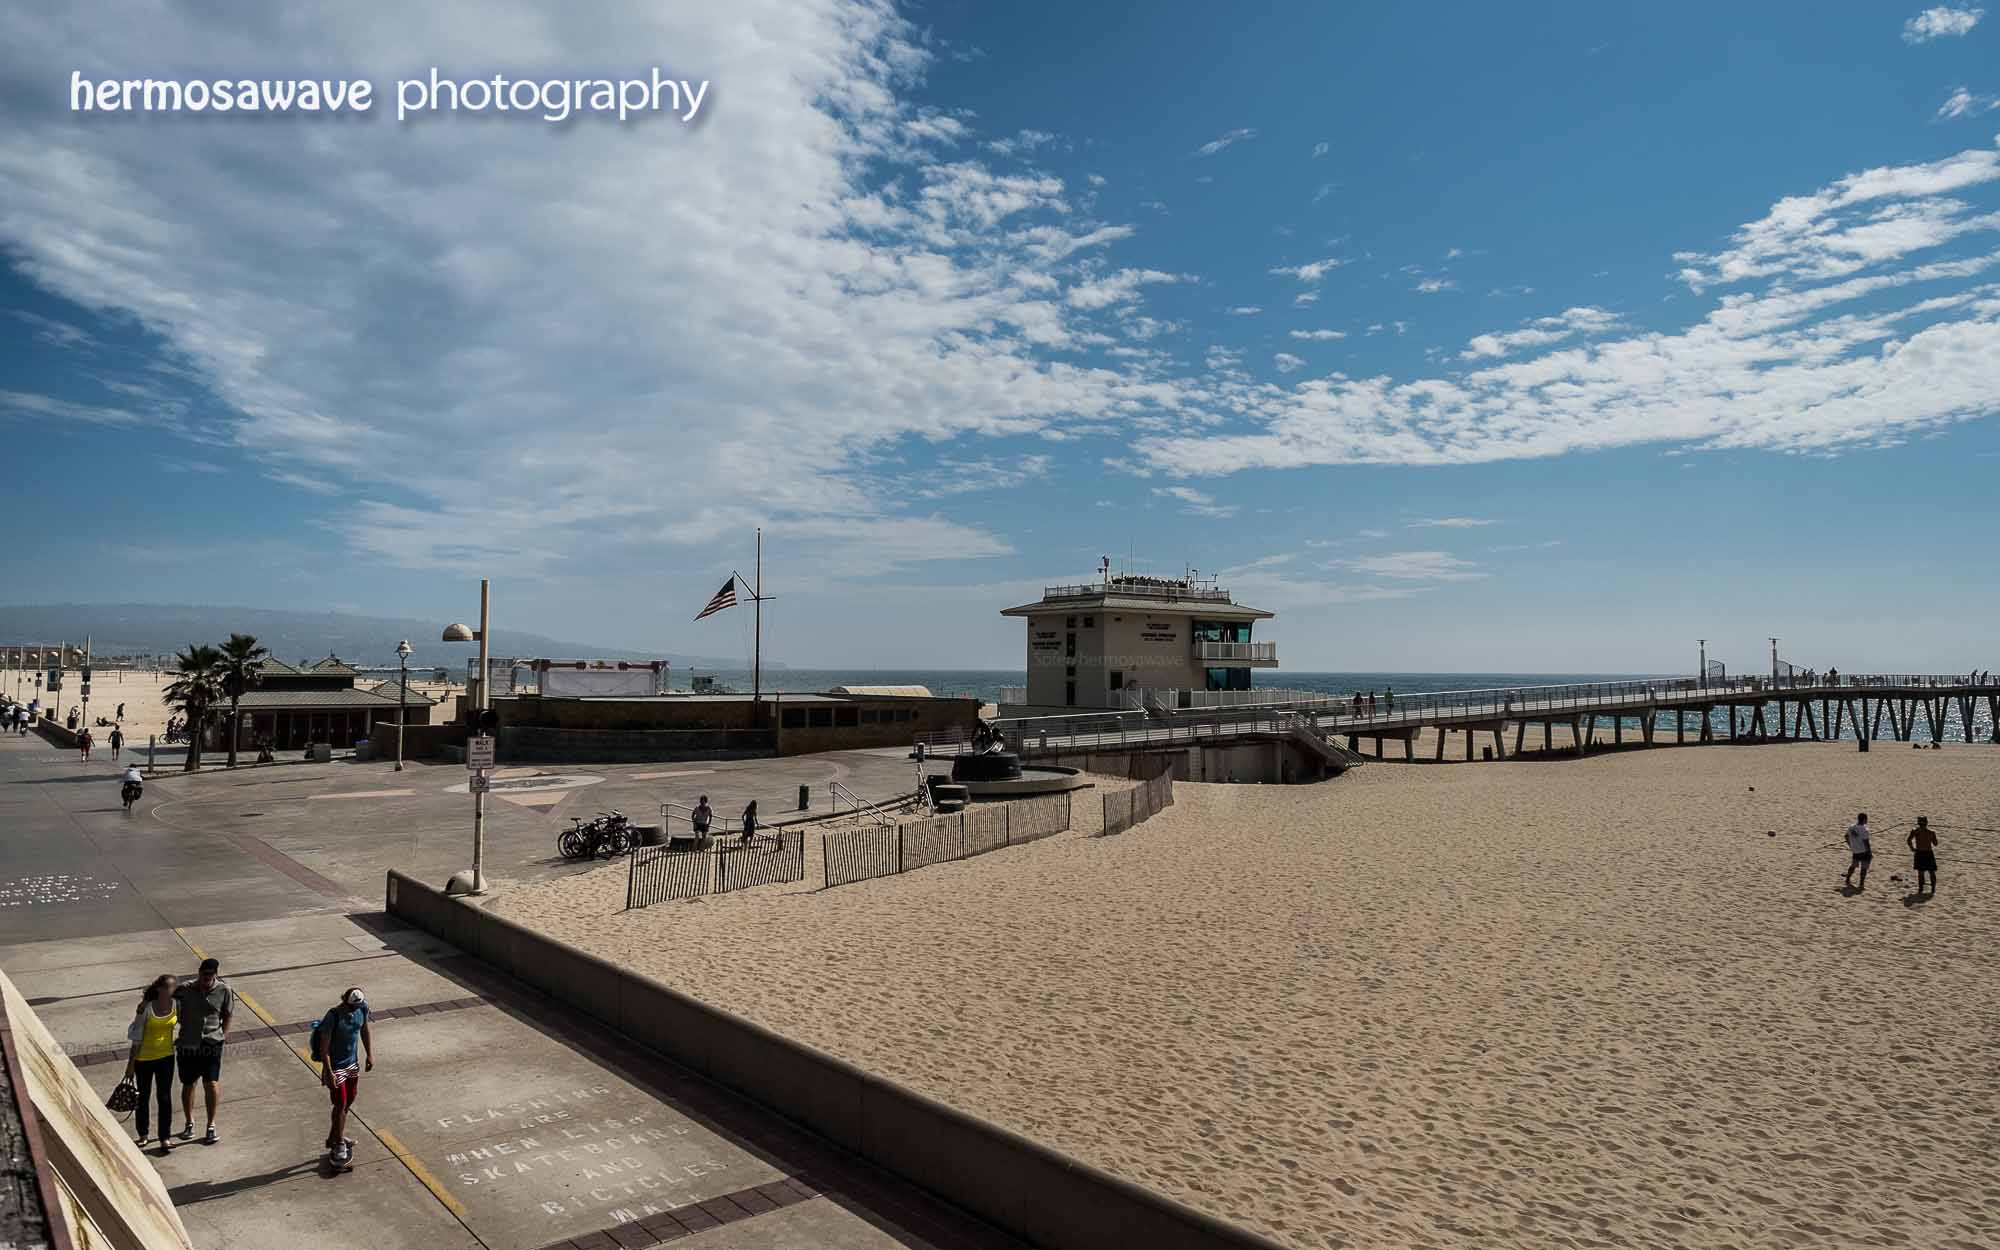 Sunny Day in Hermosa